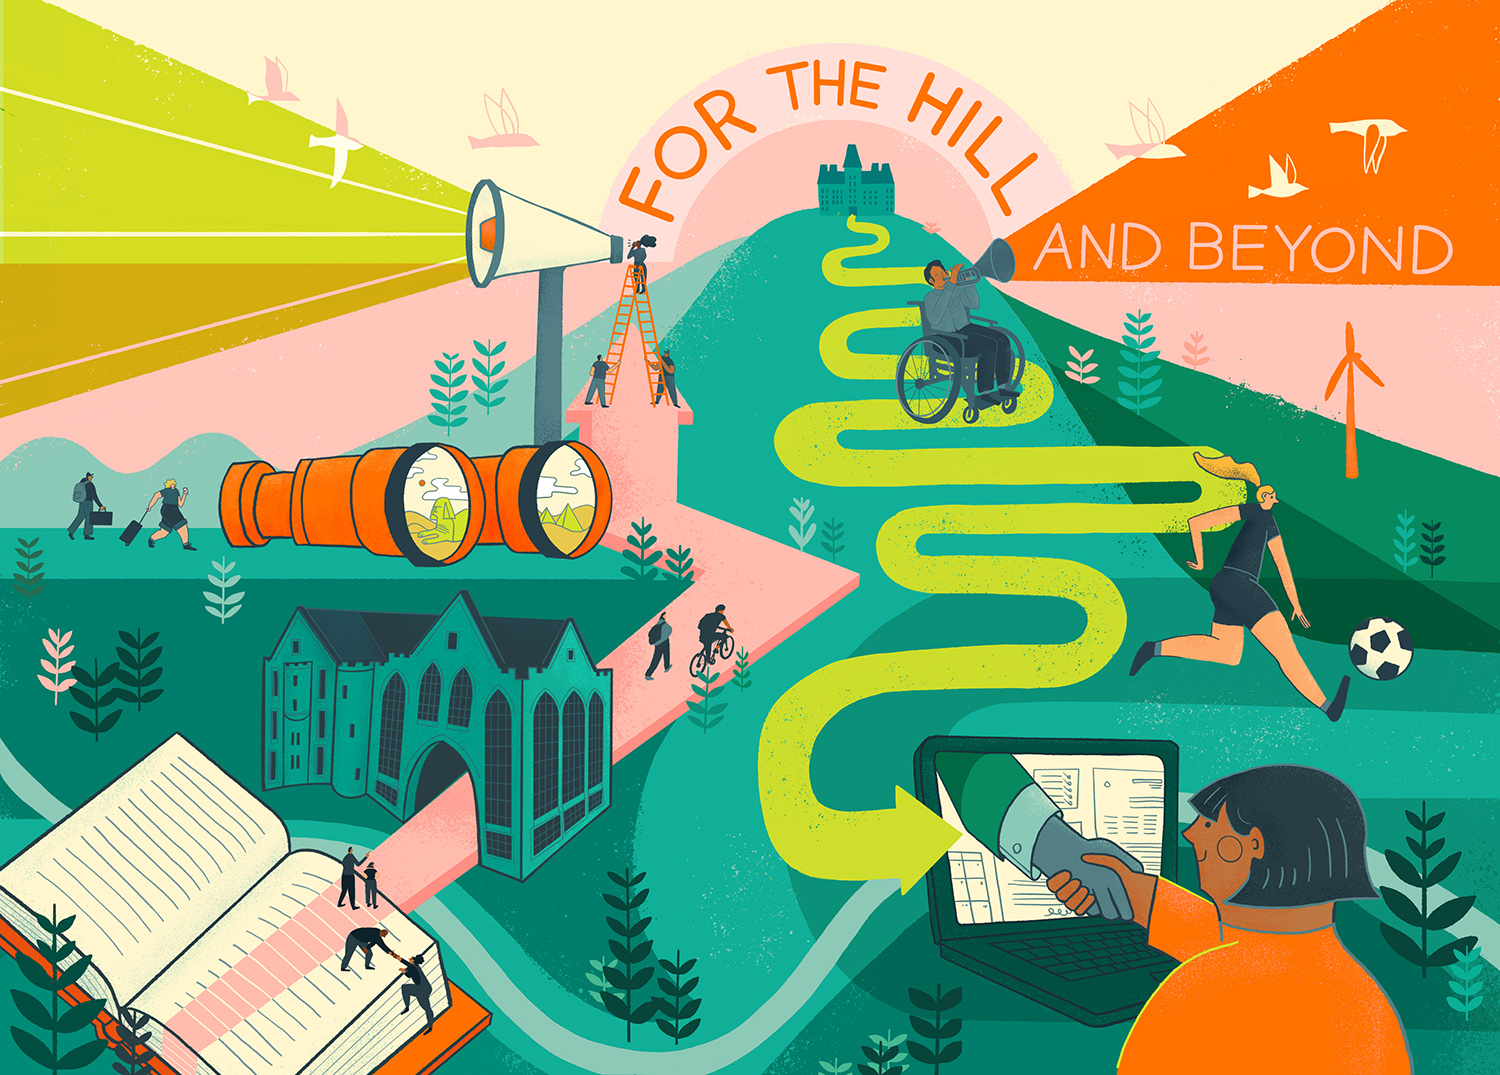 For the Hill and Beyond - Illustration by Julie Van Grol '08